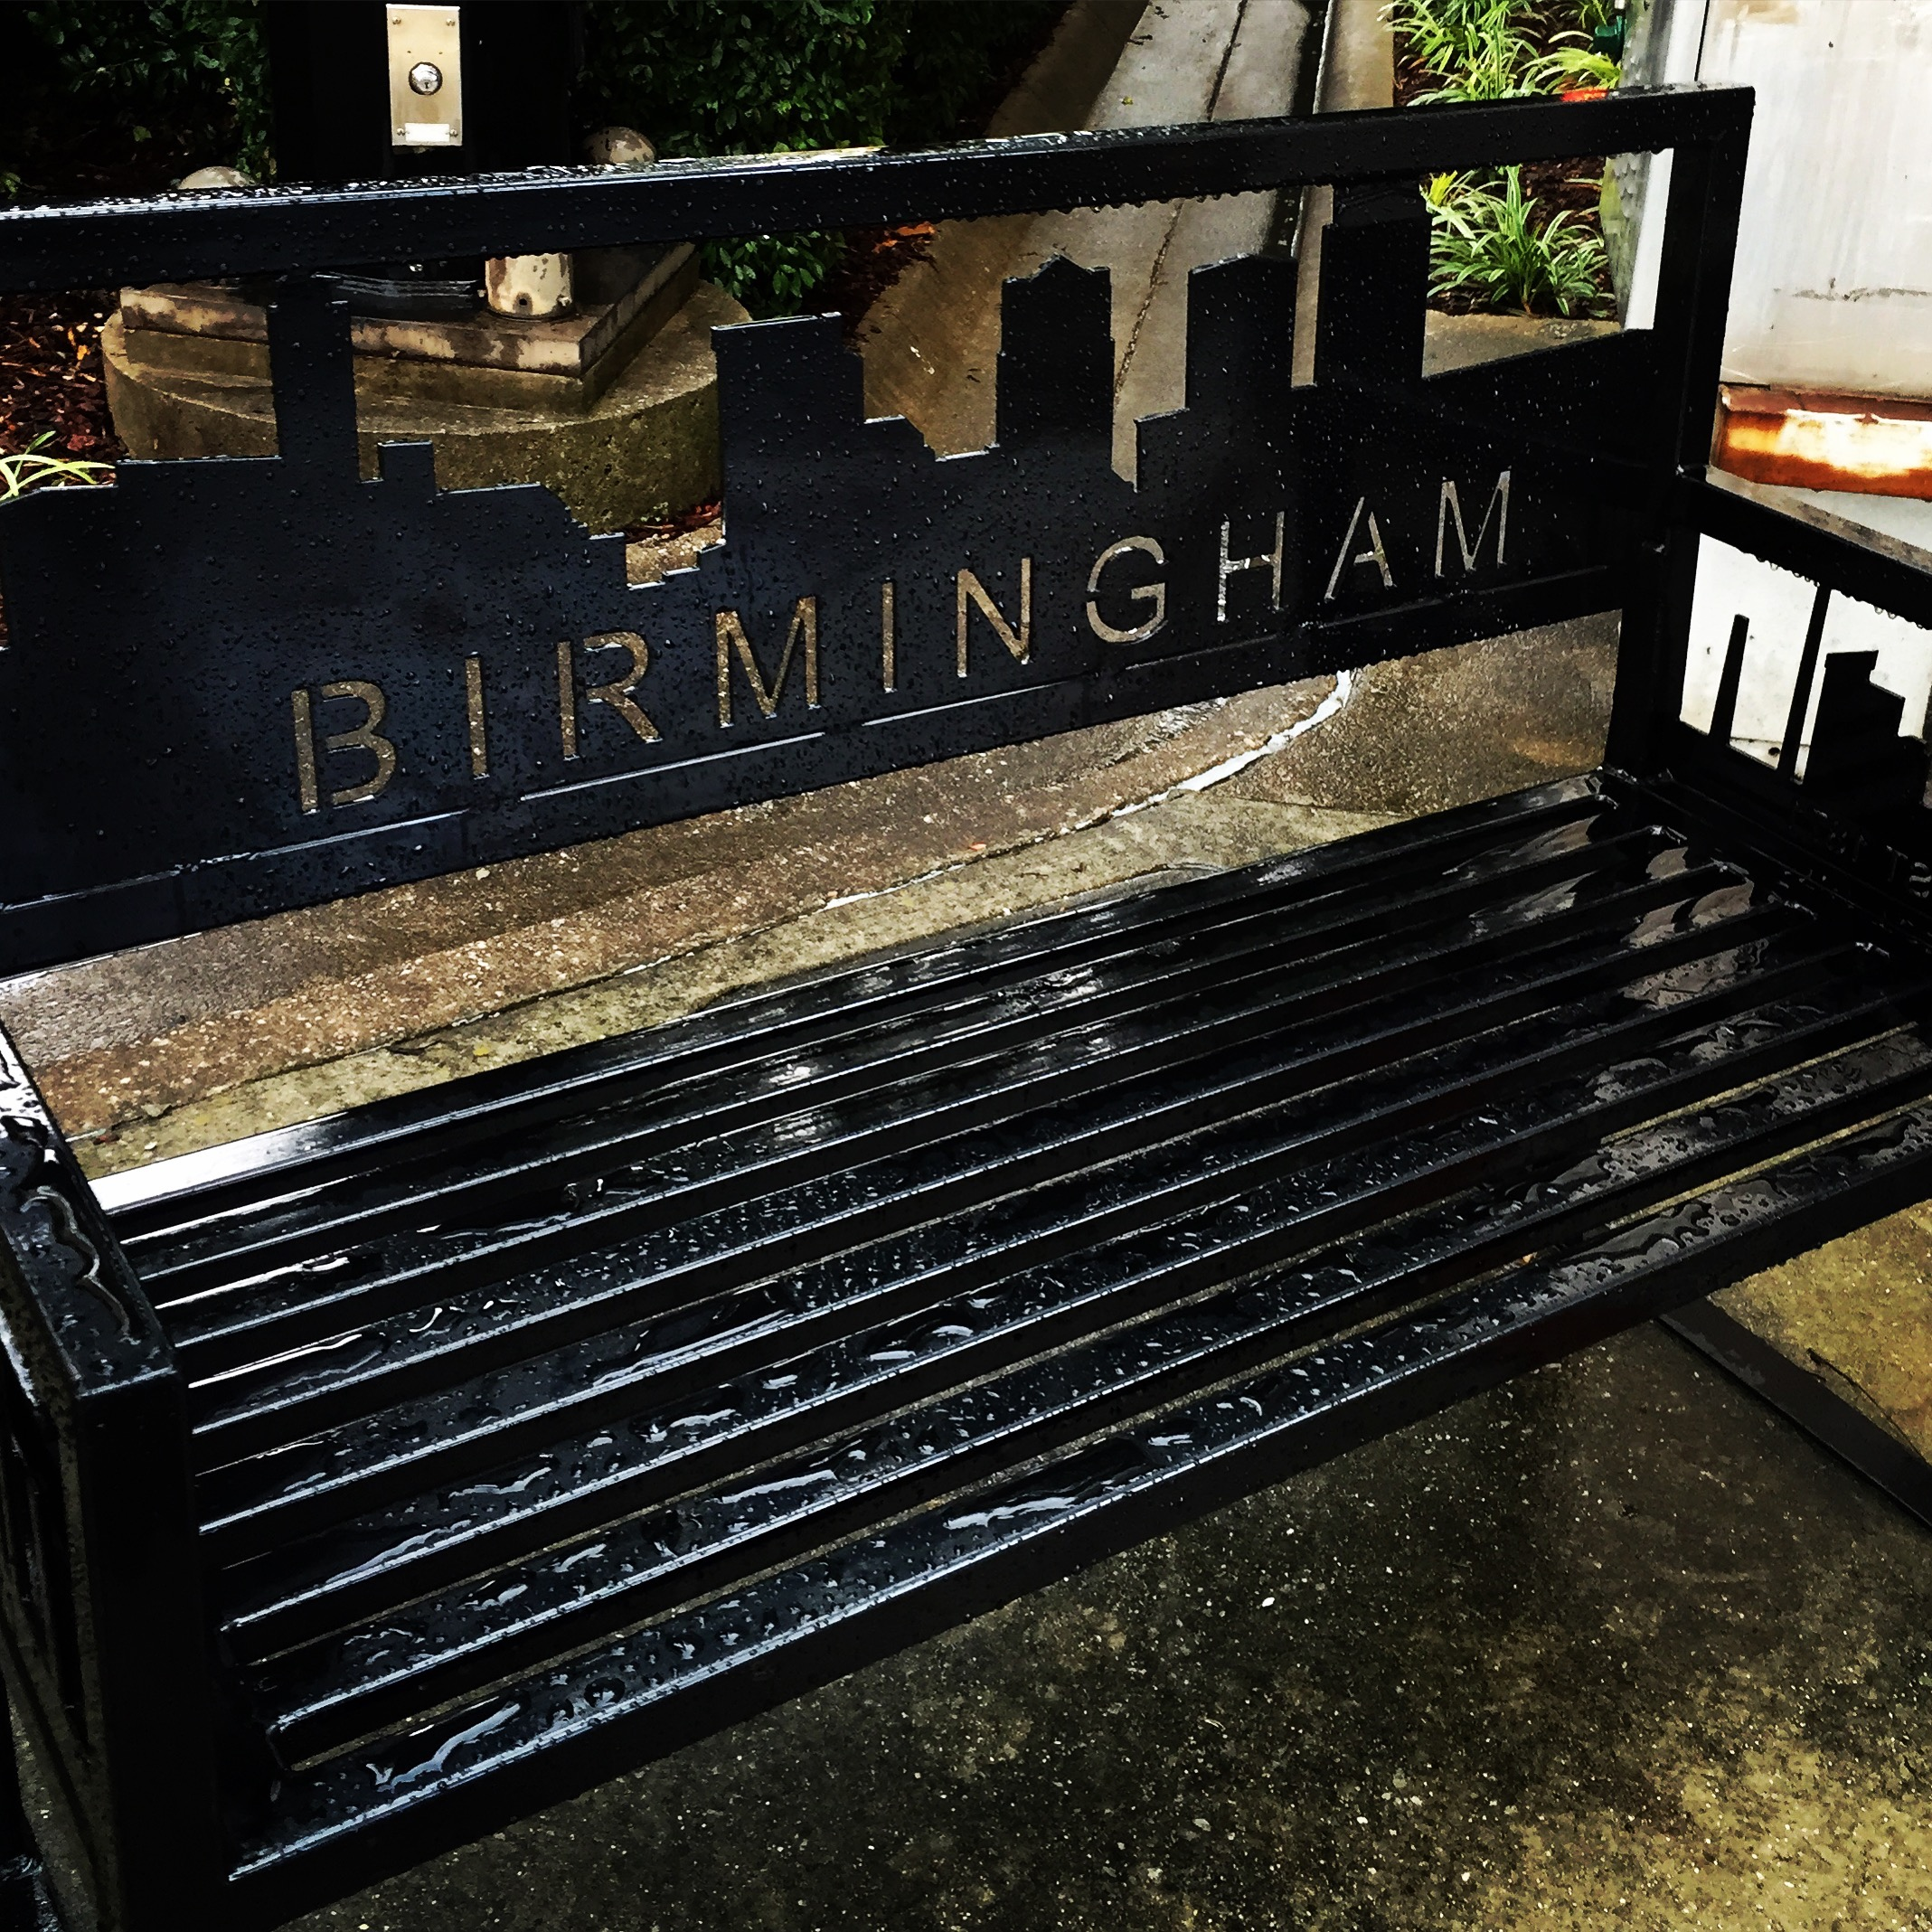 Birmingham: A True Southern City That Has Embraced a Heartbreaking Past So It Can Thrive in the Future